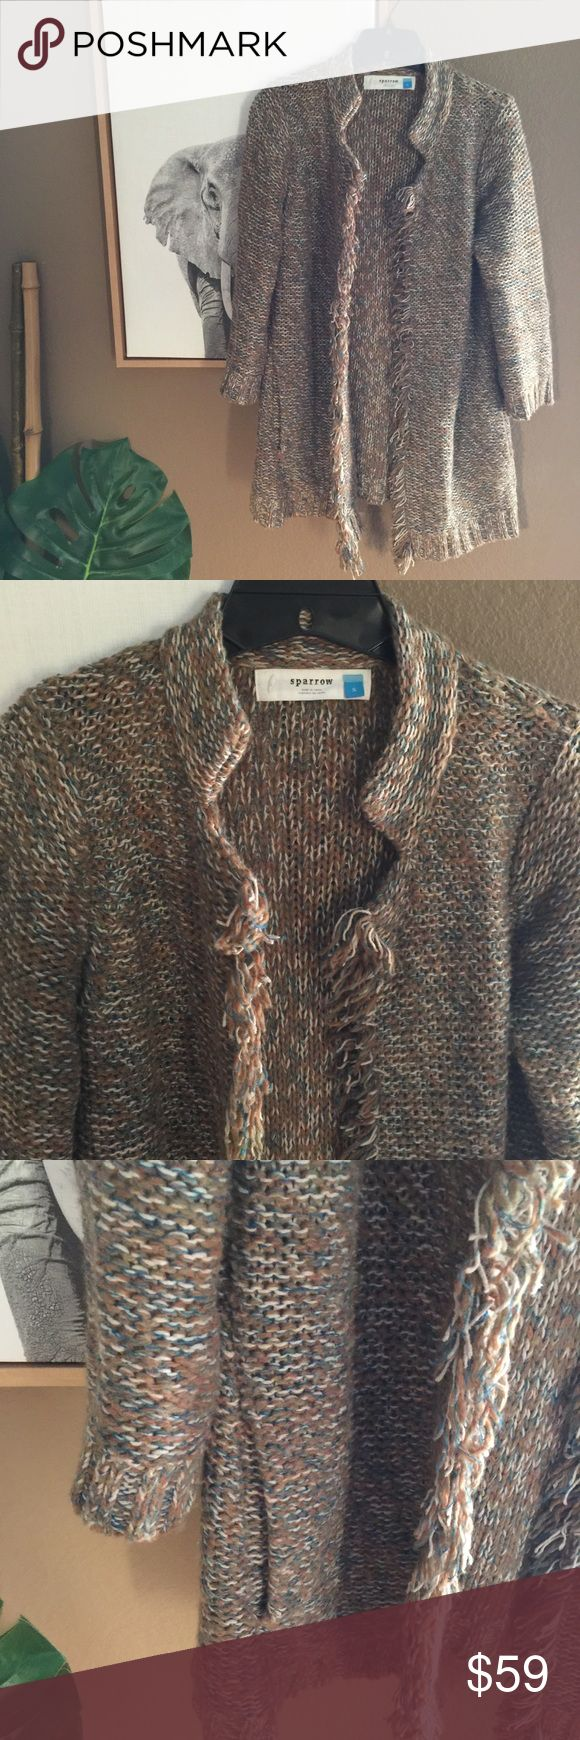 Anthropologie Sparrow Fringed Cardigan Coat So cute and warm! In very good used condition. Might have slight piling here and there but I will remove any before shipping. I wore this a couple times with a fitted Allsaints dress. It's very versatile. Wear with your favorite leggings and boots or with a fitted t shirt dress/tights and off you go! Looking for another girl who will rock this! Fits true to size in my opinion. The sleeves are 3/4 in length. Anthropologie Sweaters